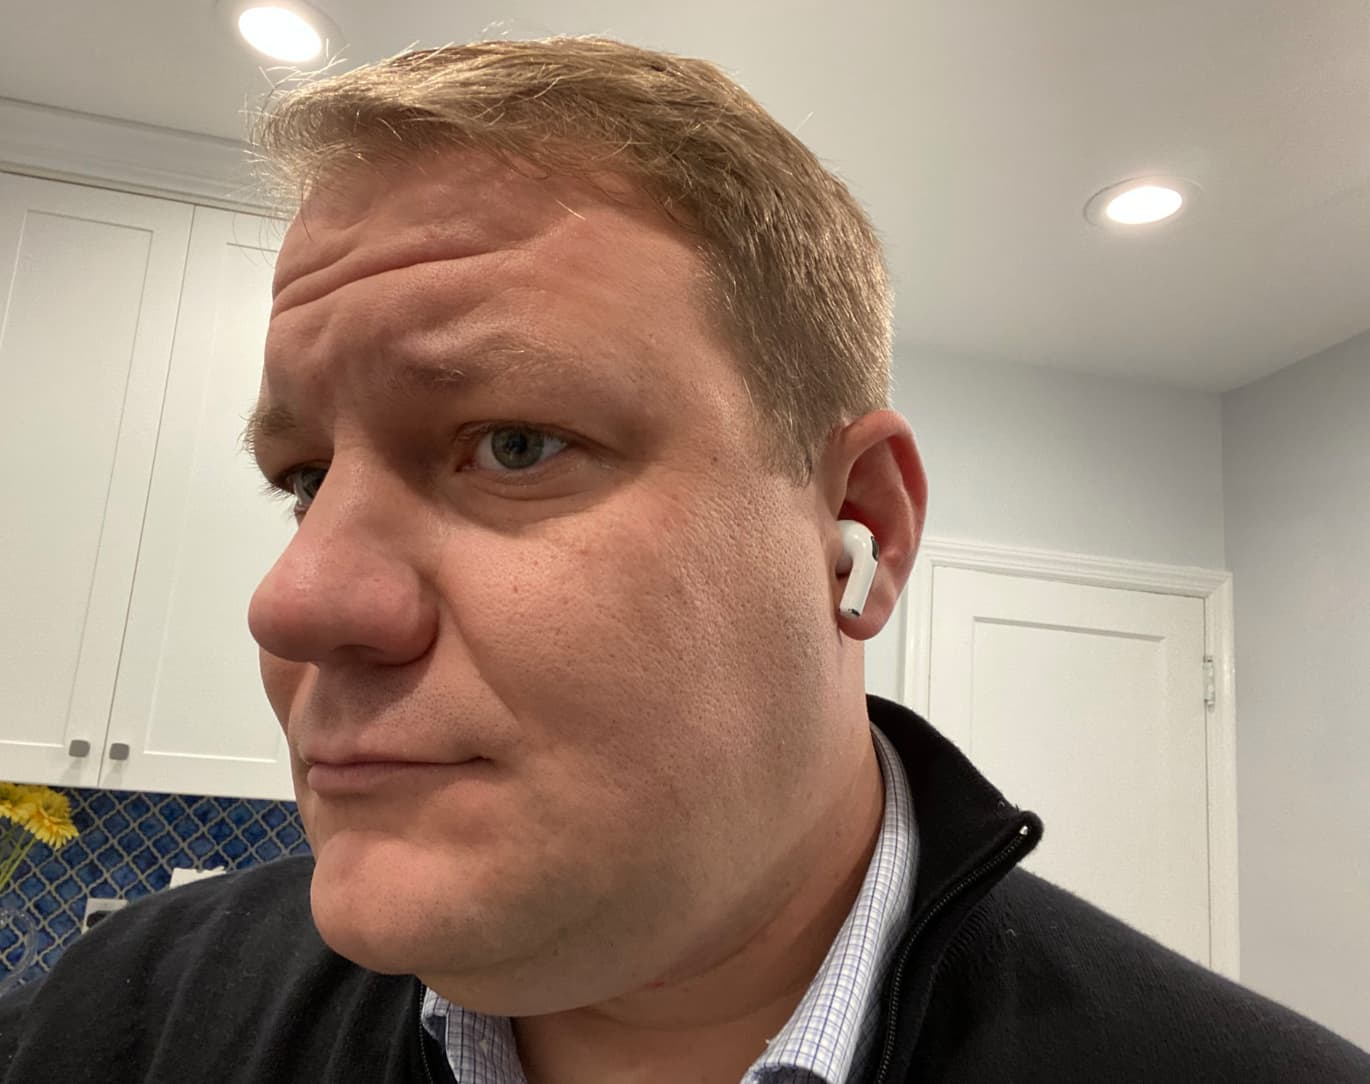 Apple Airpods Pro Review Active Noise Cancellation Is Great